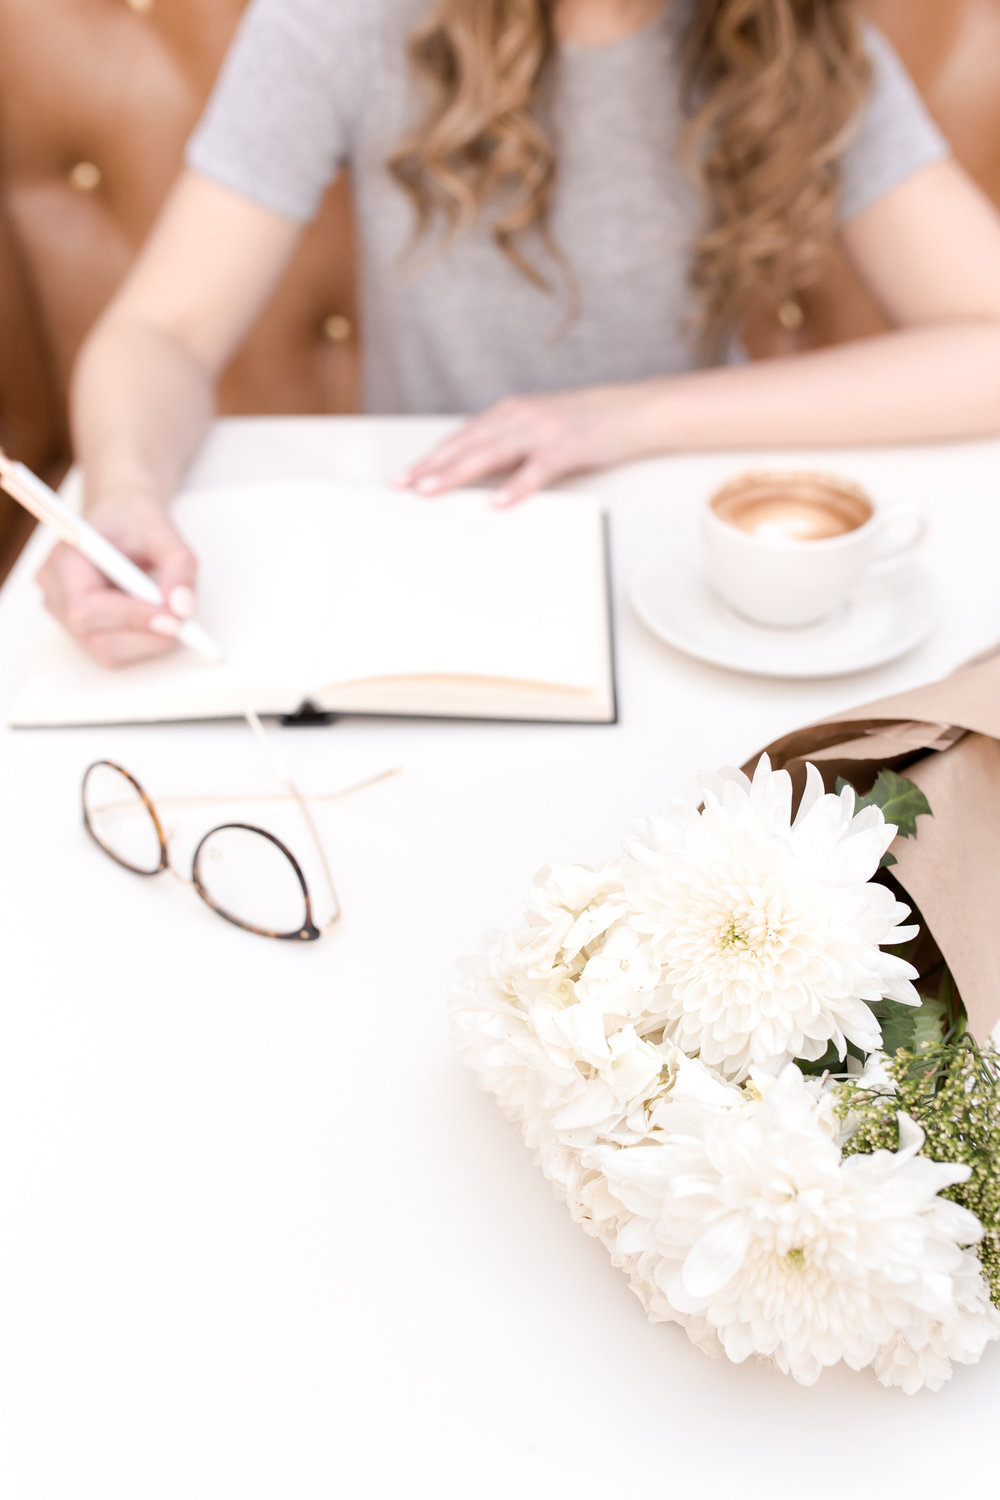 haute-stock-photography-but-first-coffee-final-18.jpg